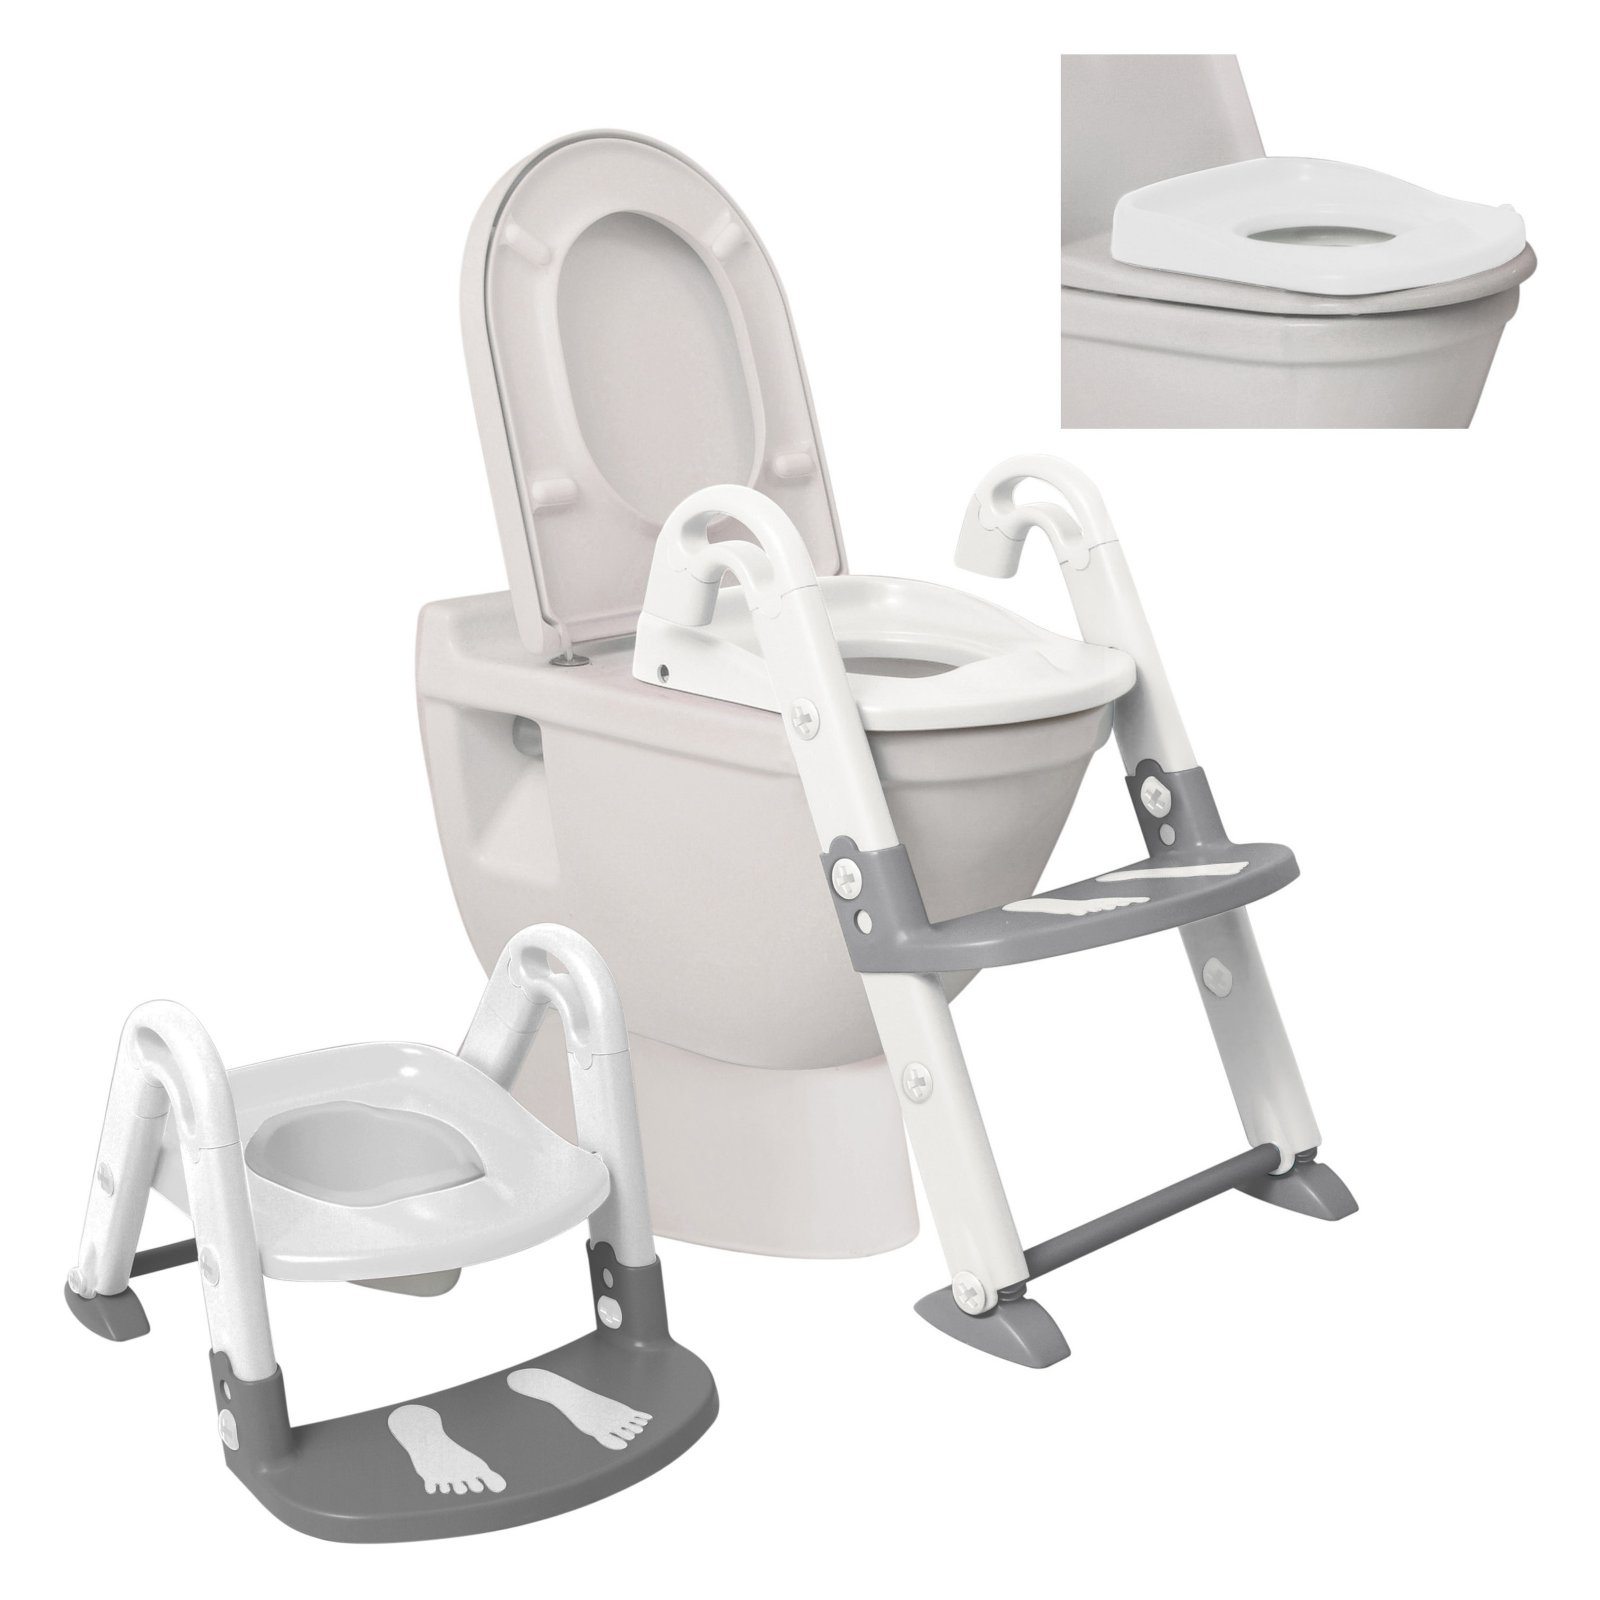 Dreambaby 3-in-1 Toilet Trainer